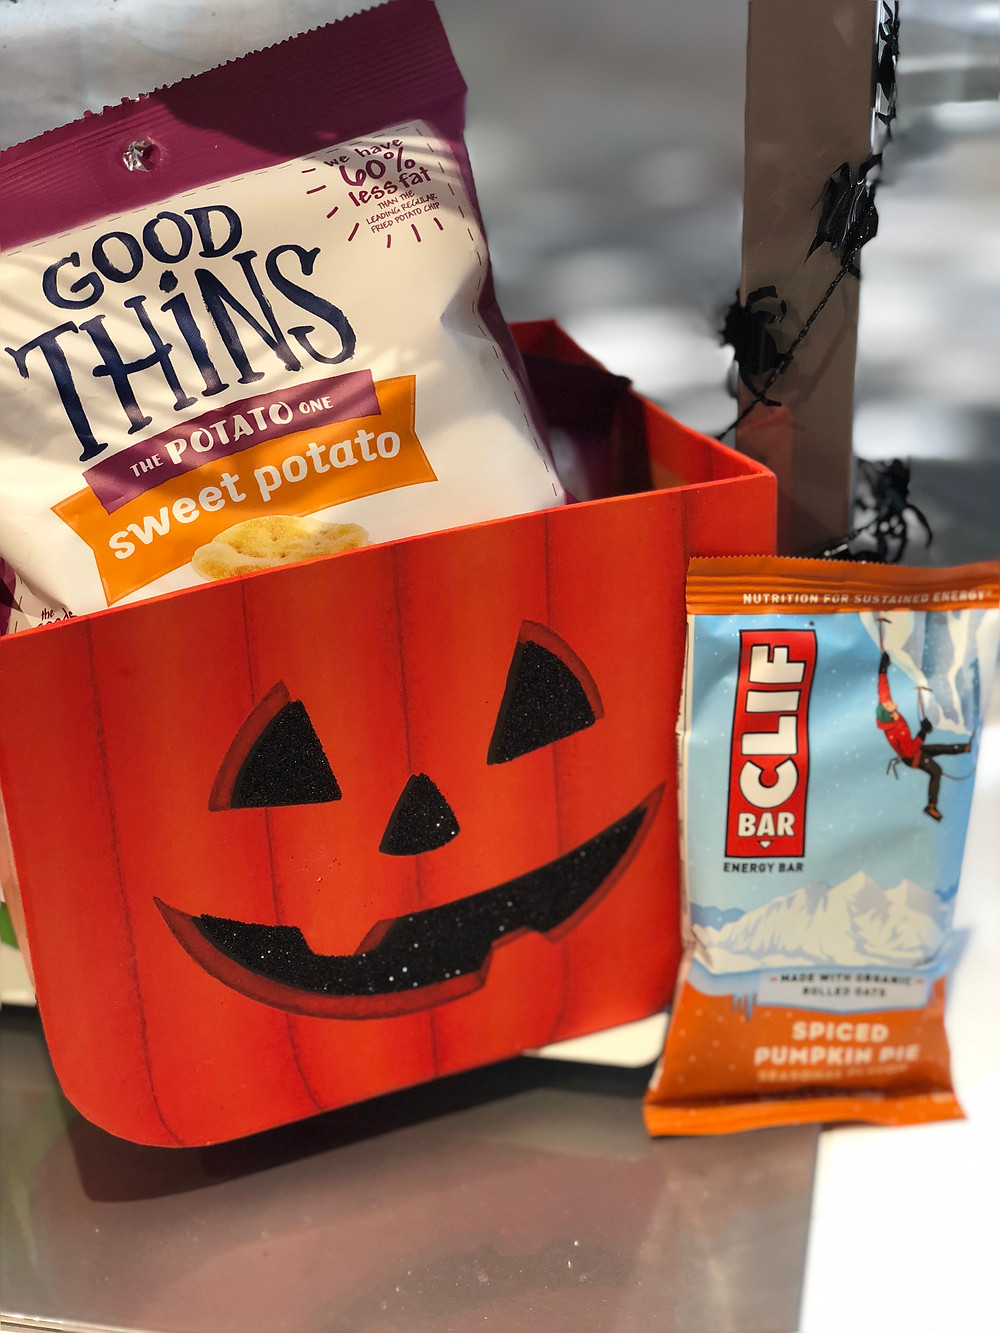 A cliff bar and sweet potato chips by a pumpkin box.